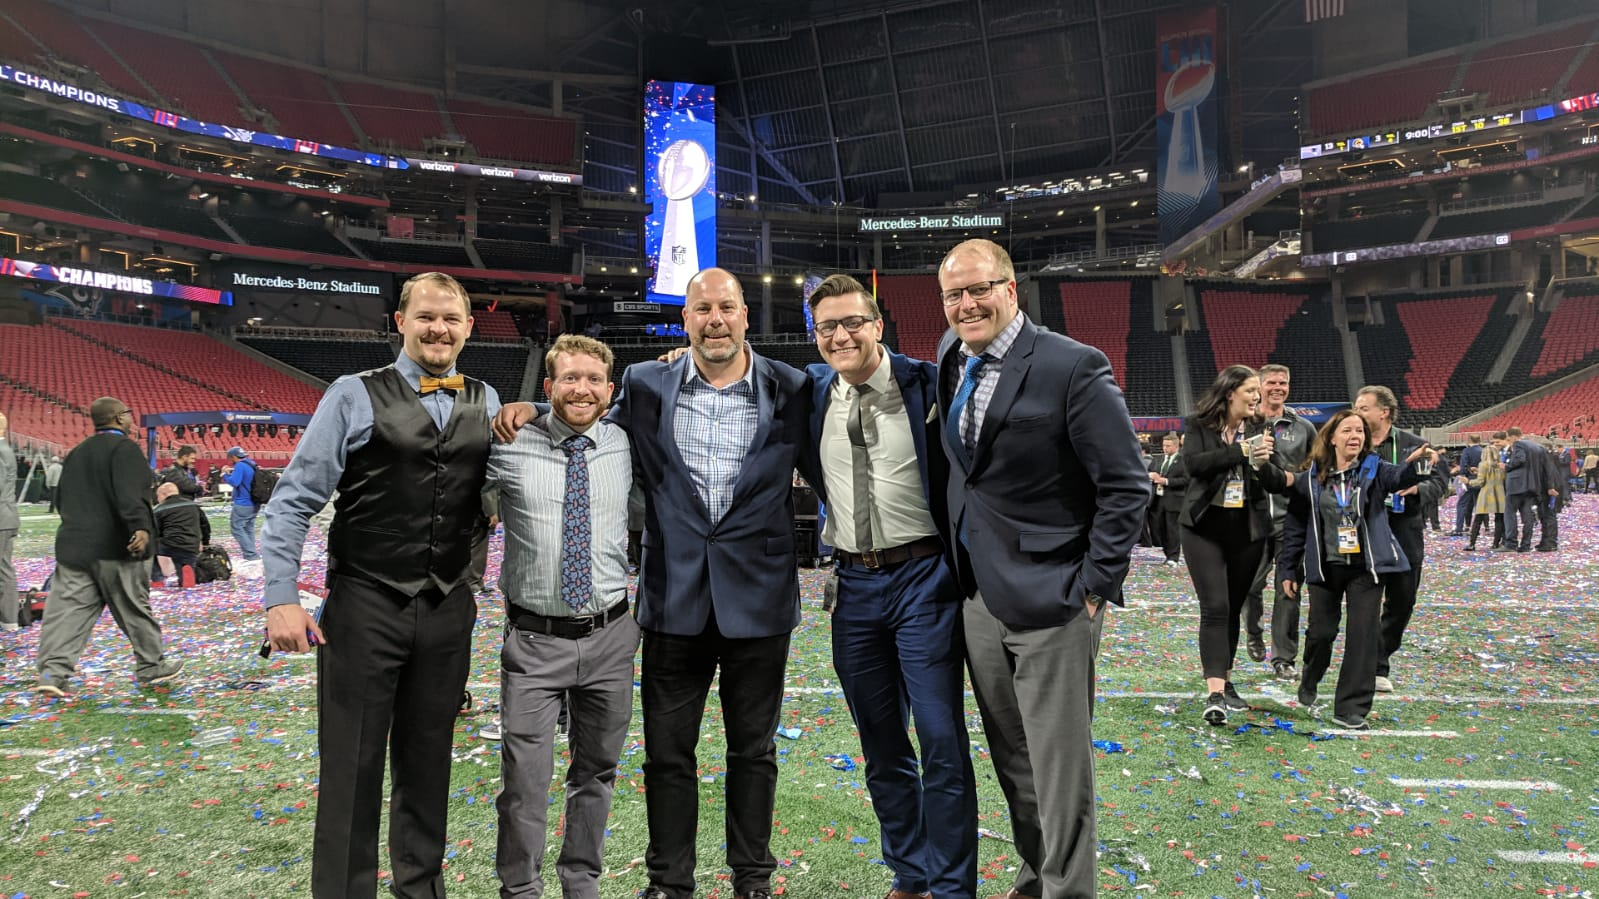 Ross staff on the field at Mercedes Benz Stadium